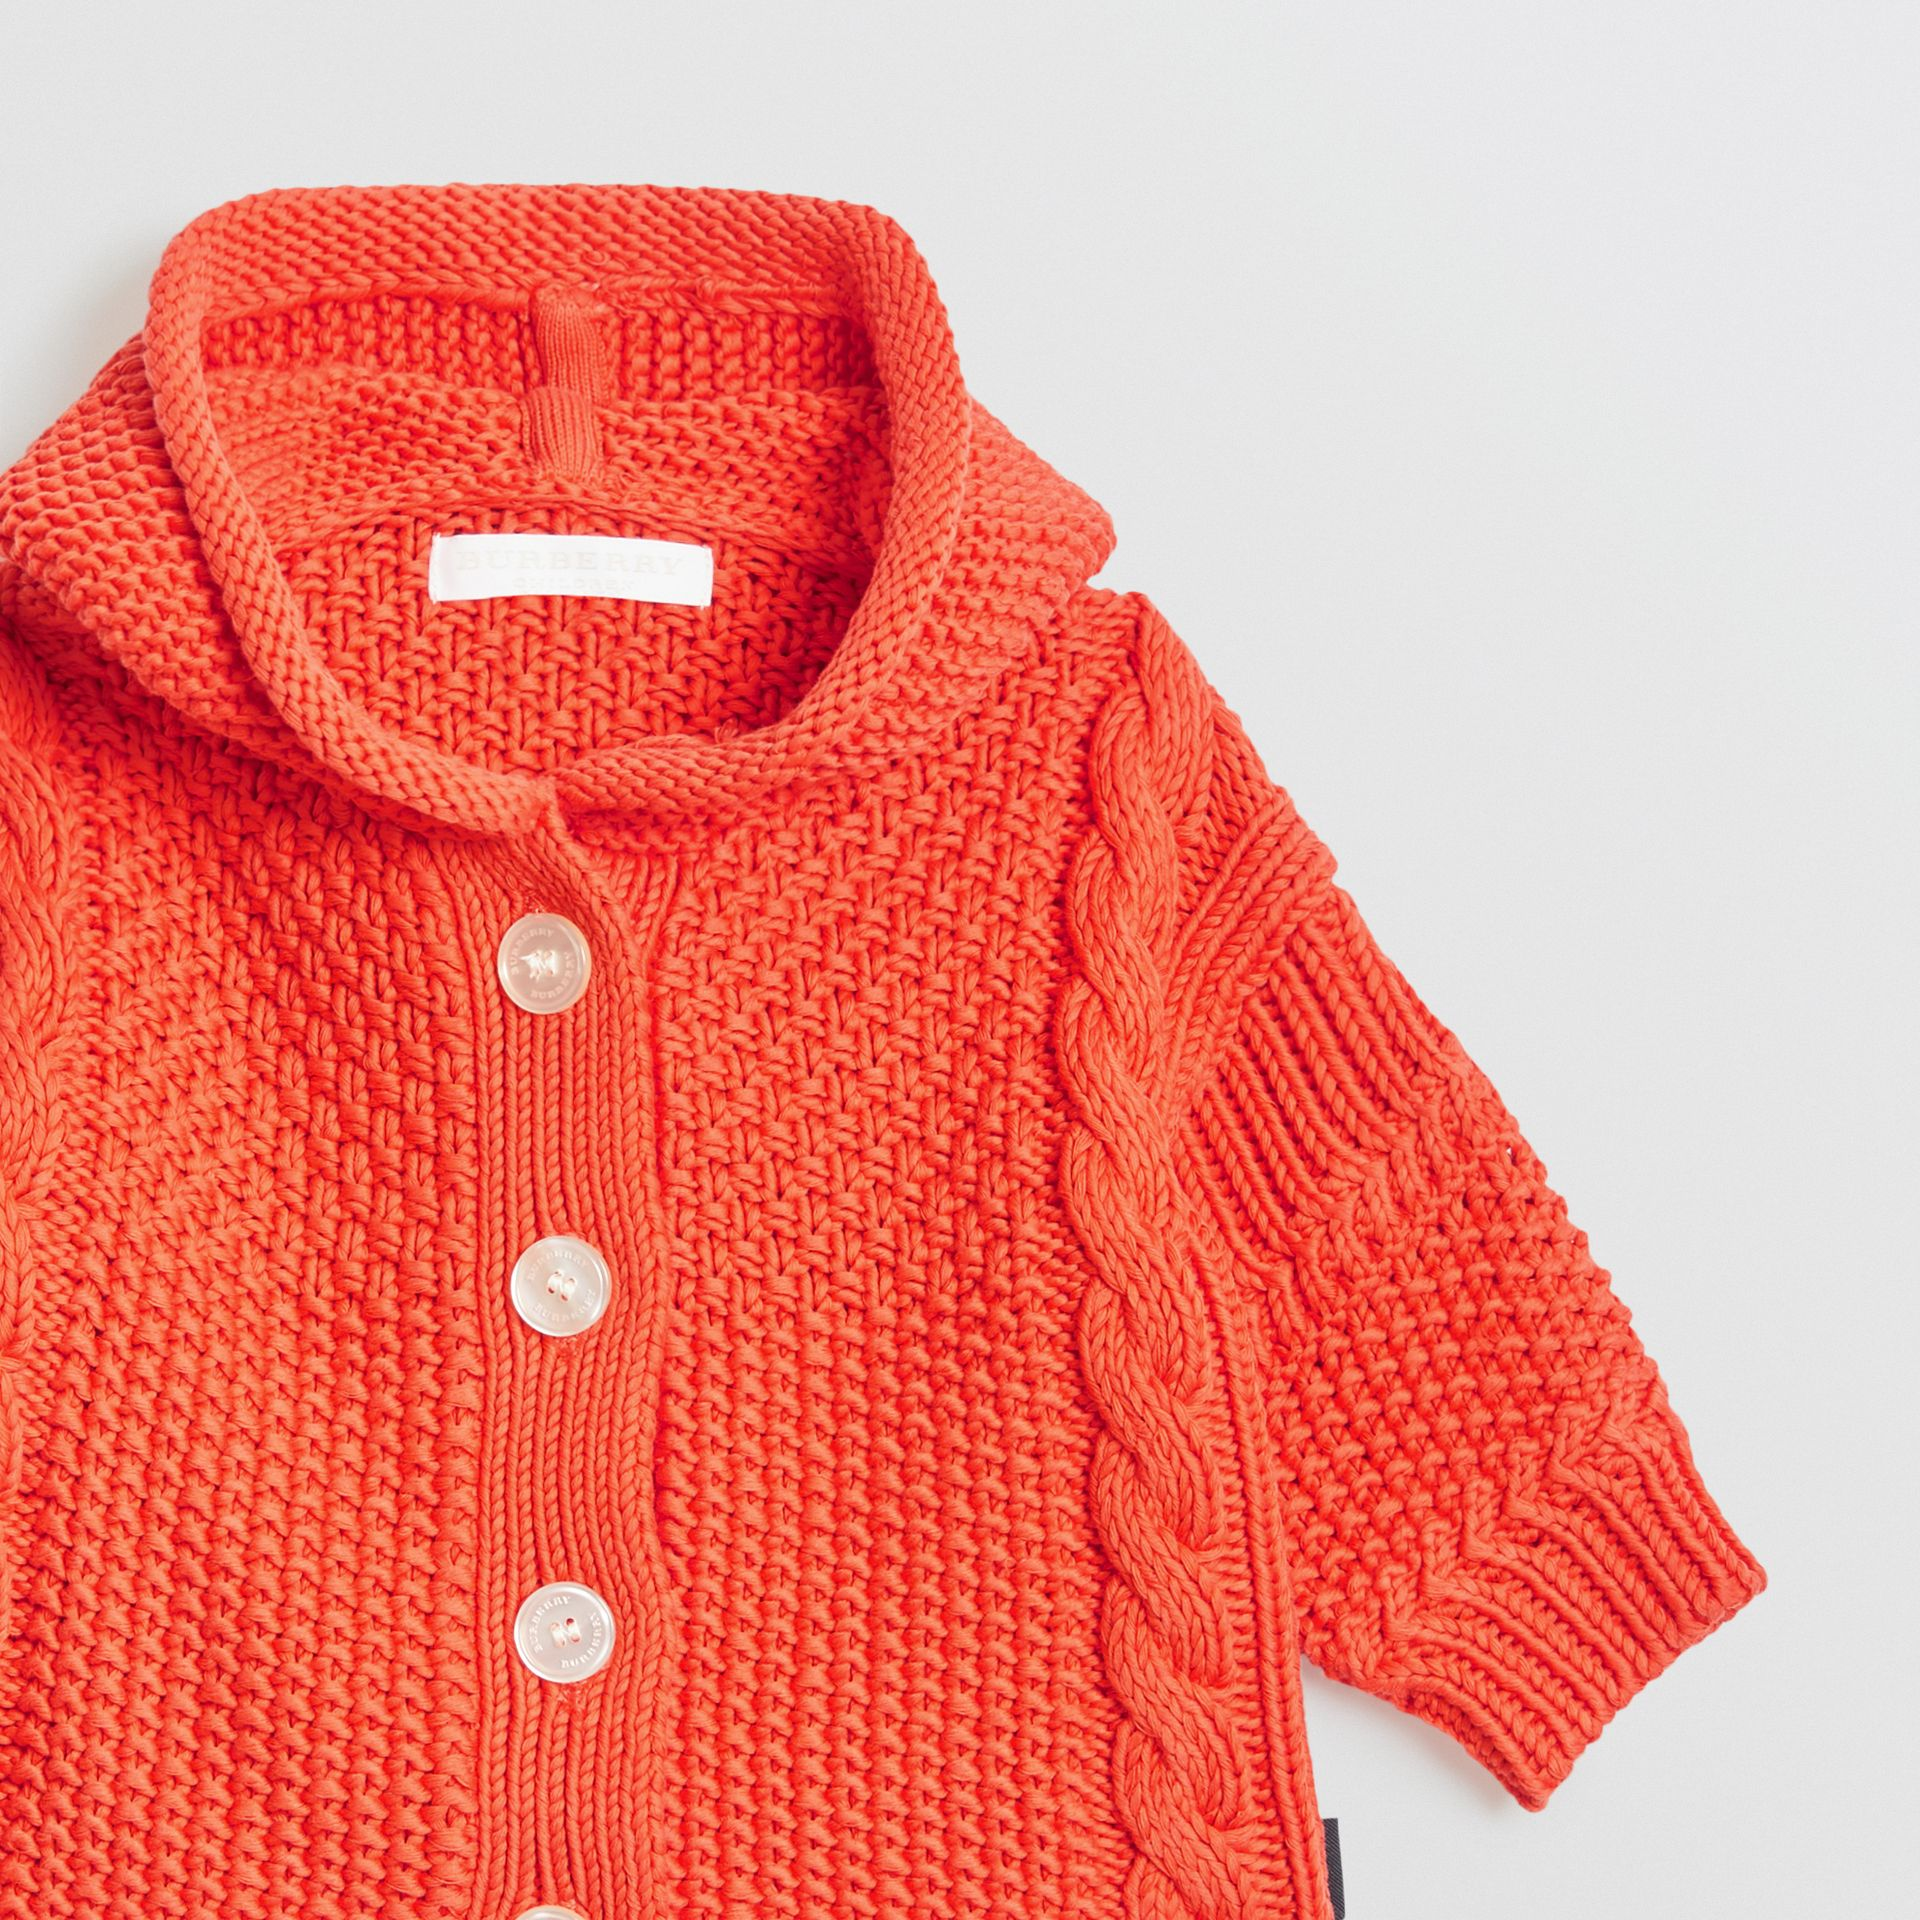 Contrast Knit Cotton Hooded Jacket in Orange Red - Children | Burberry Singapore - gallery image 4